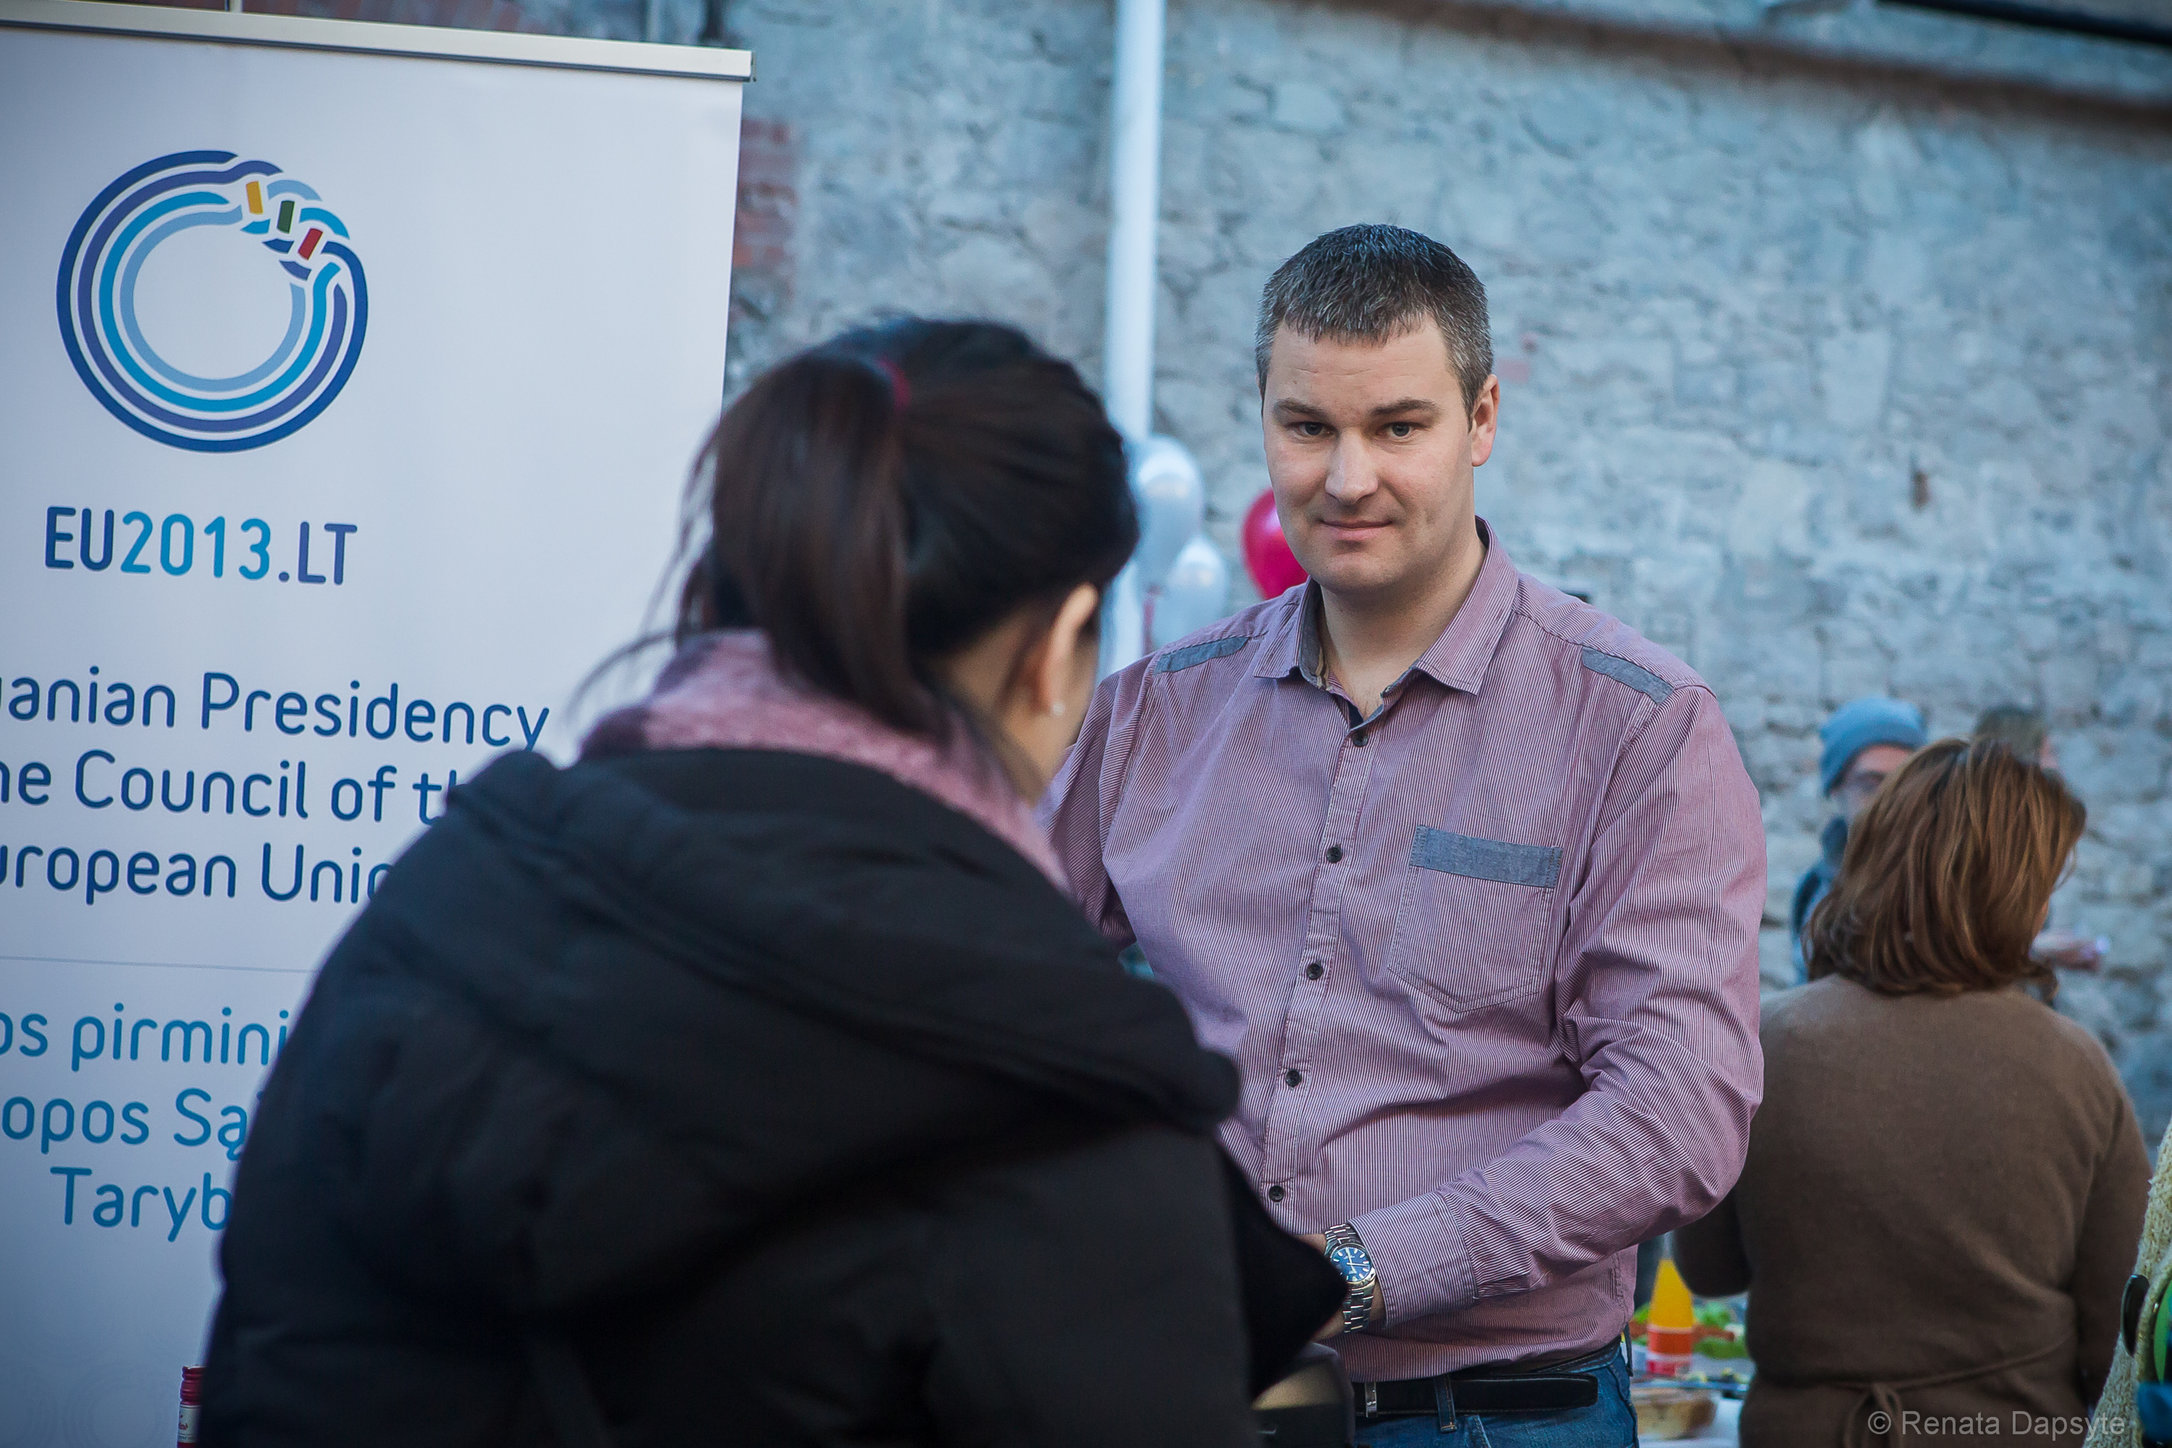 007_International Charity Bazaar Dublin 2013.JPG